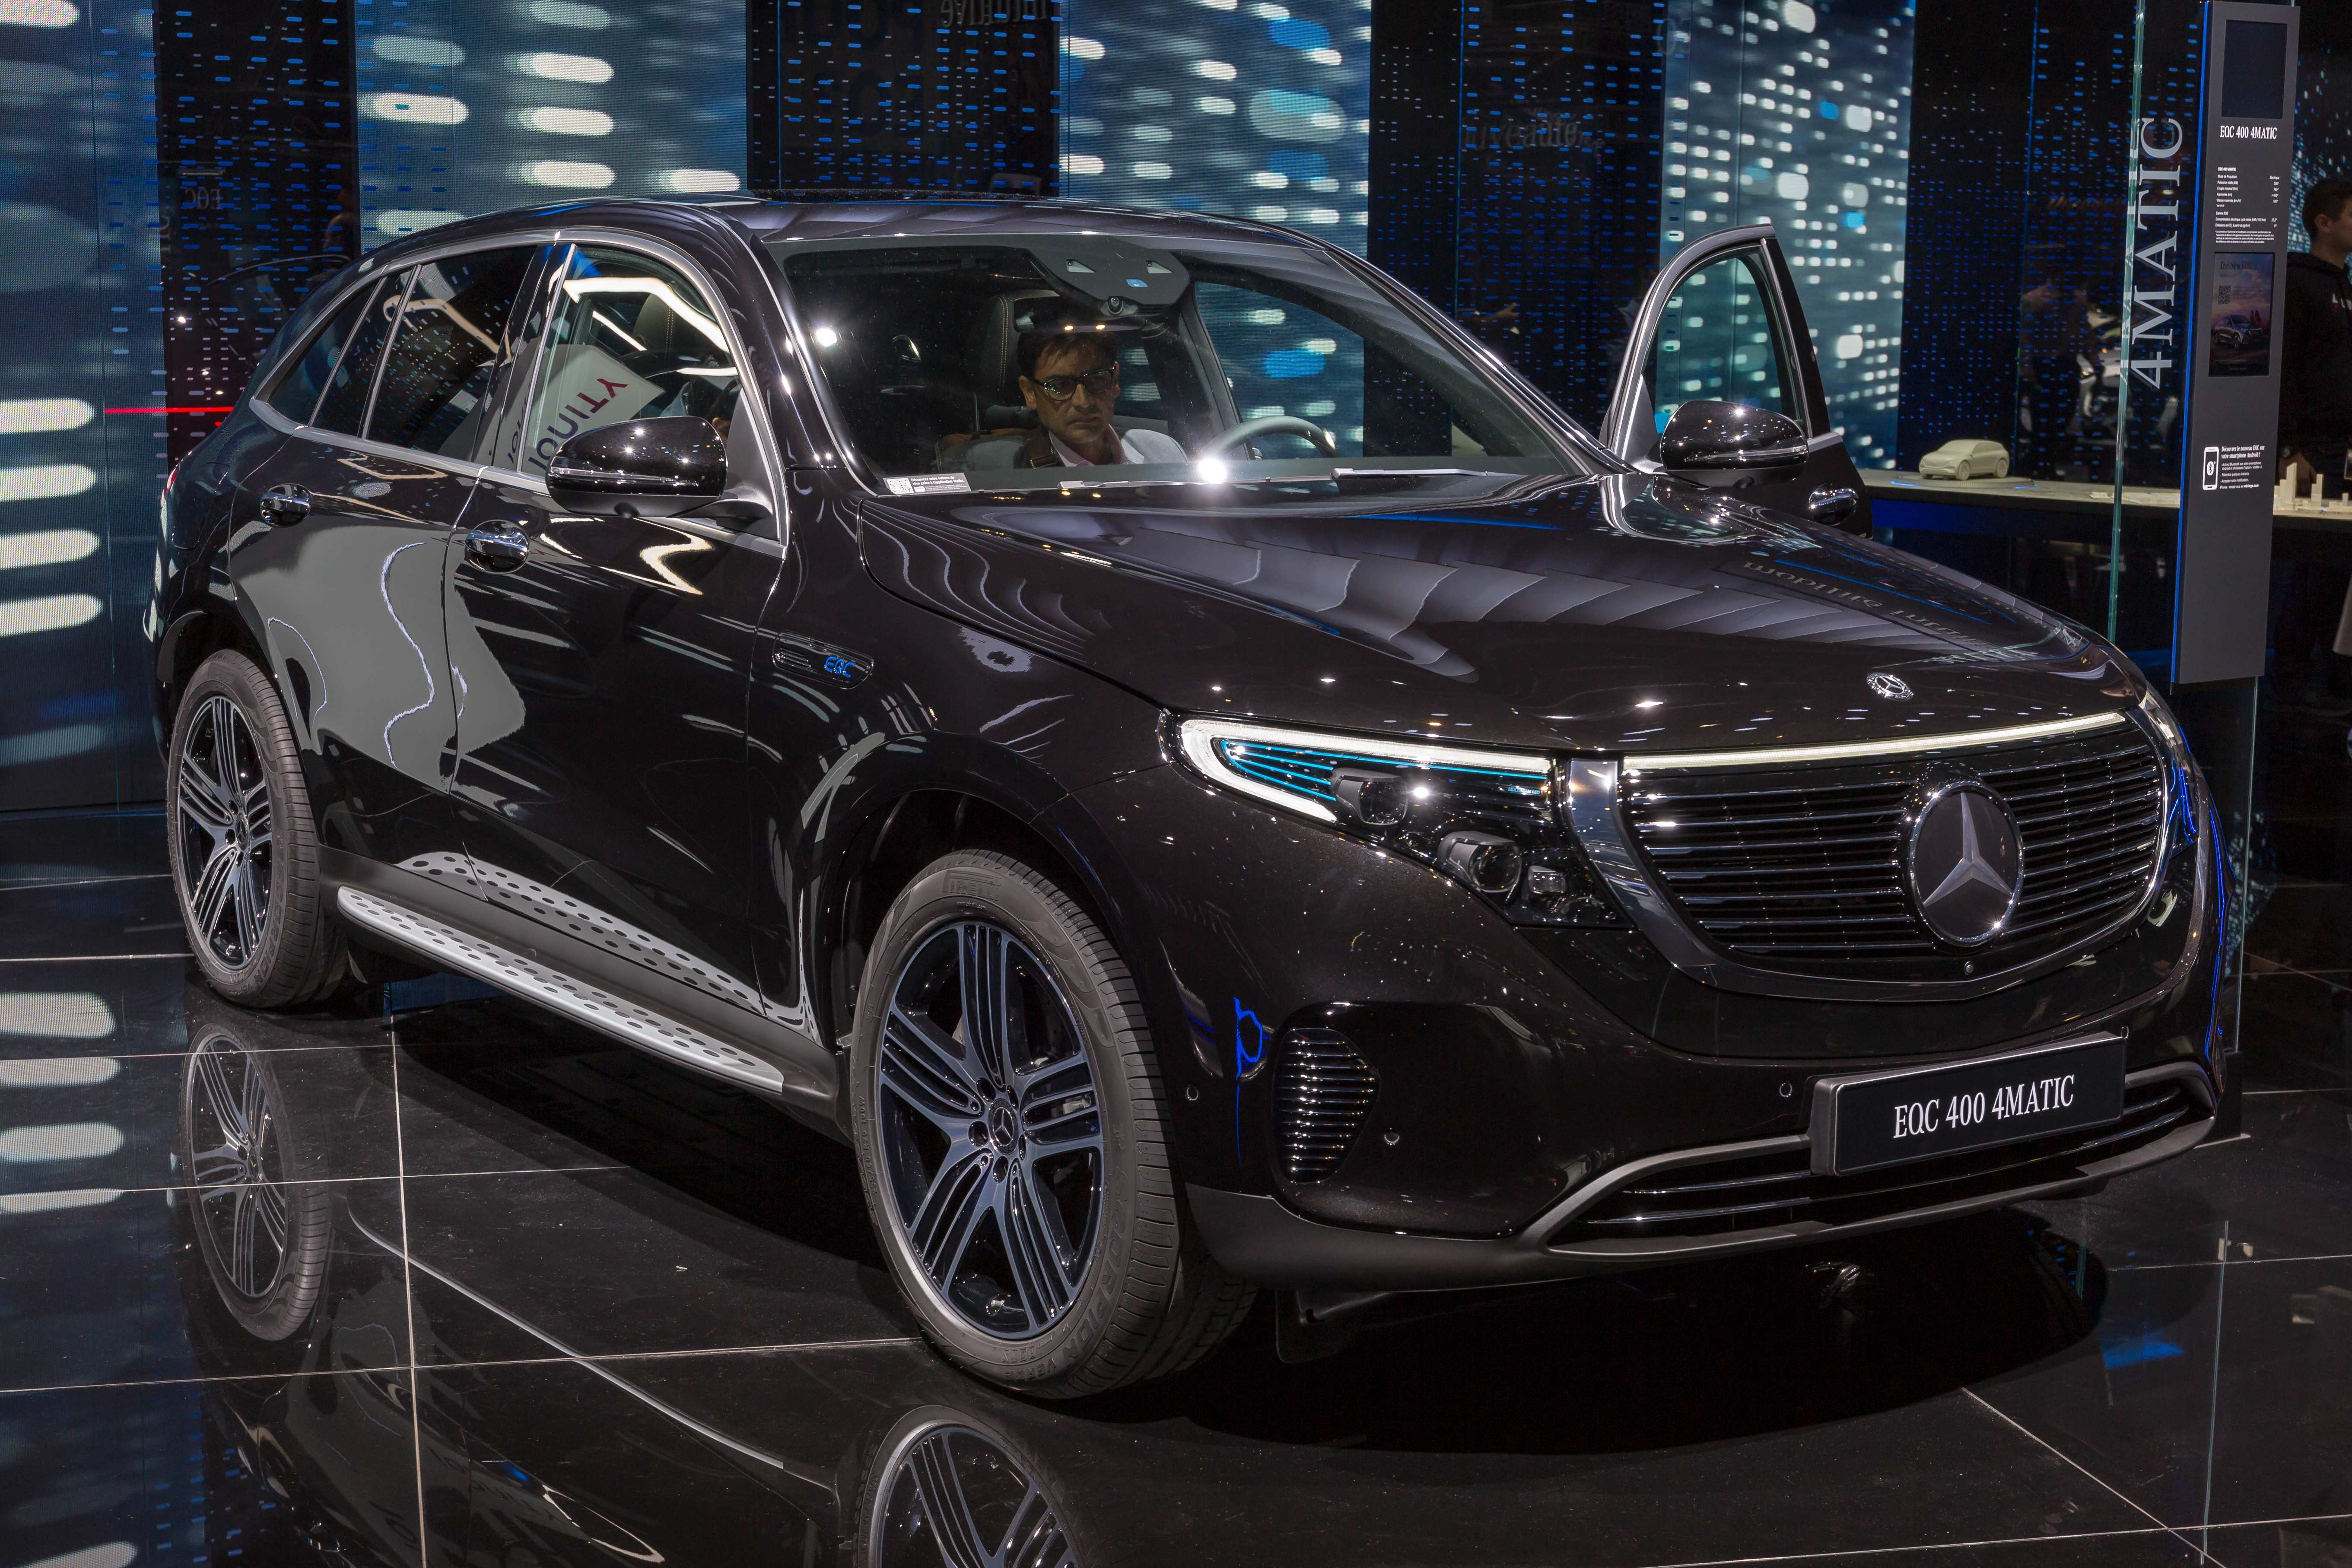 86 New Eqc Mercedes 2019 Release Date